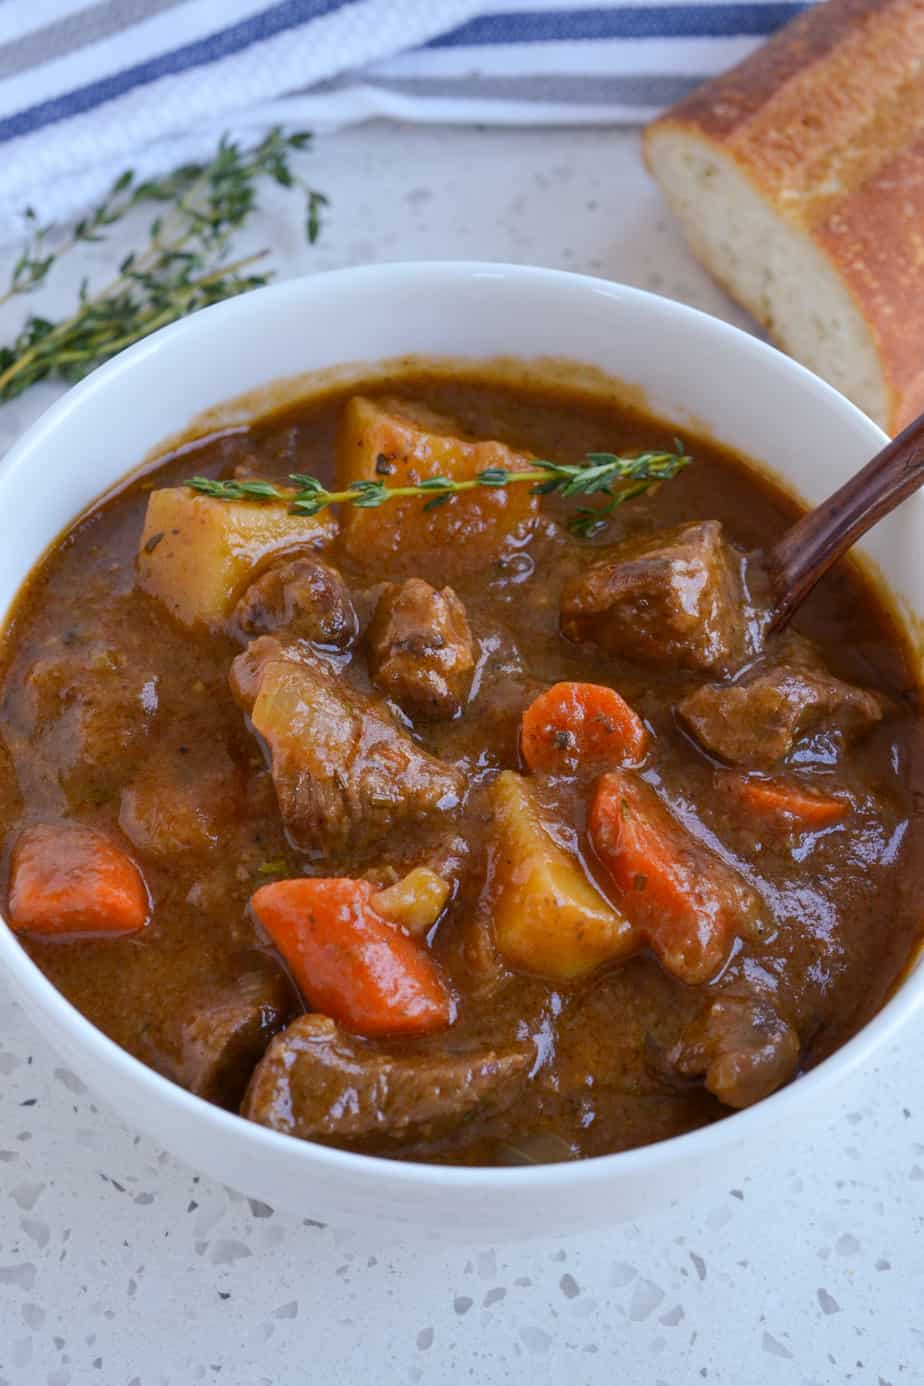 Slow cooked Irish stew with potatoes and carrots.